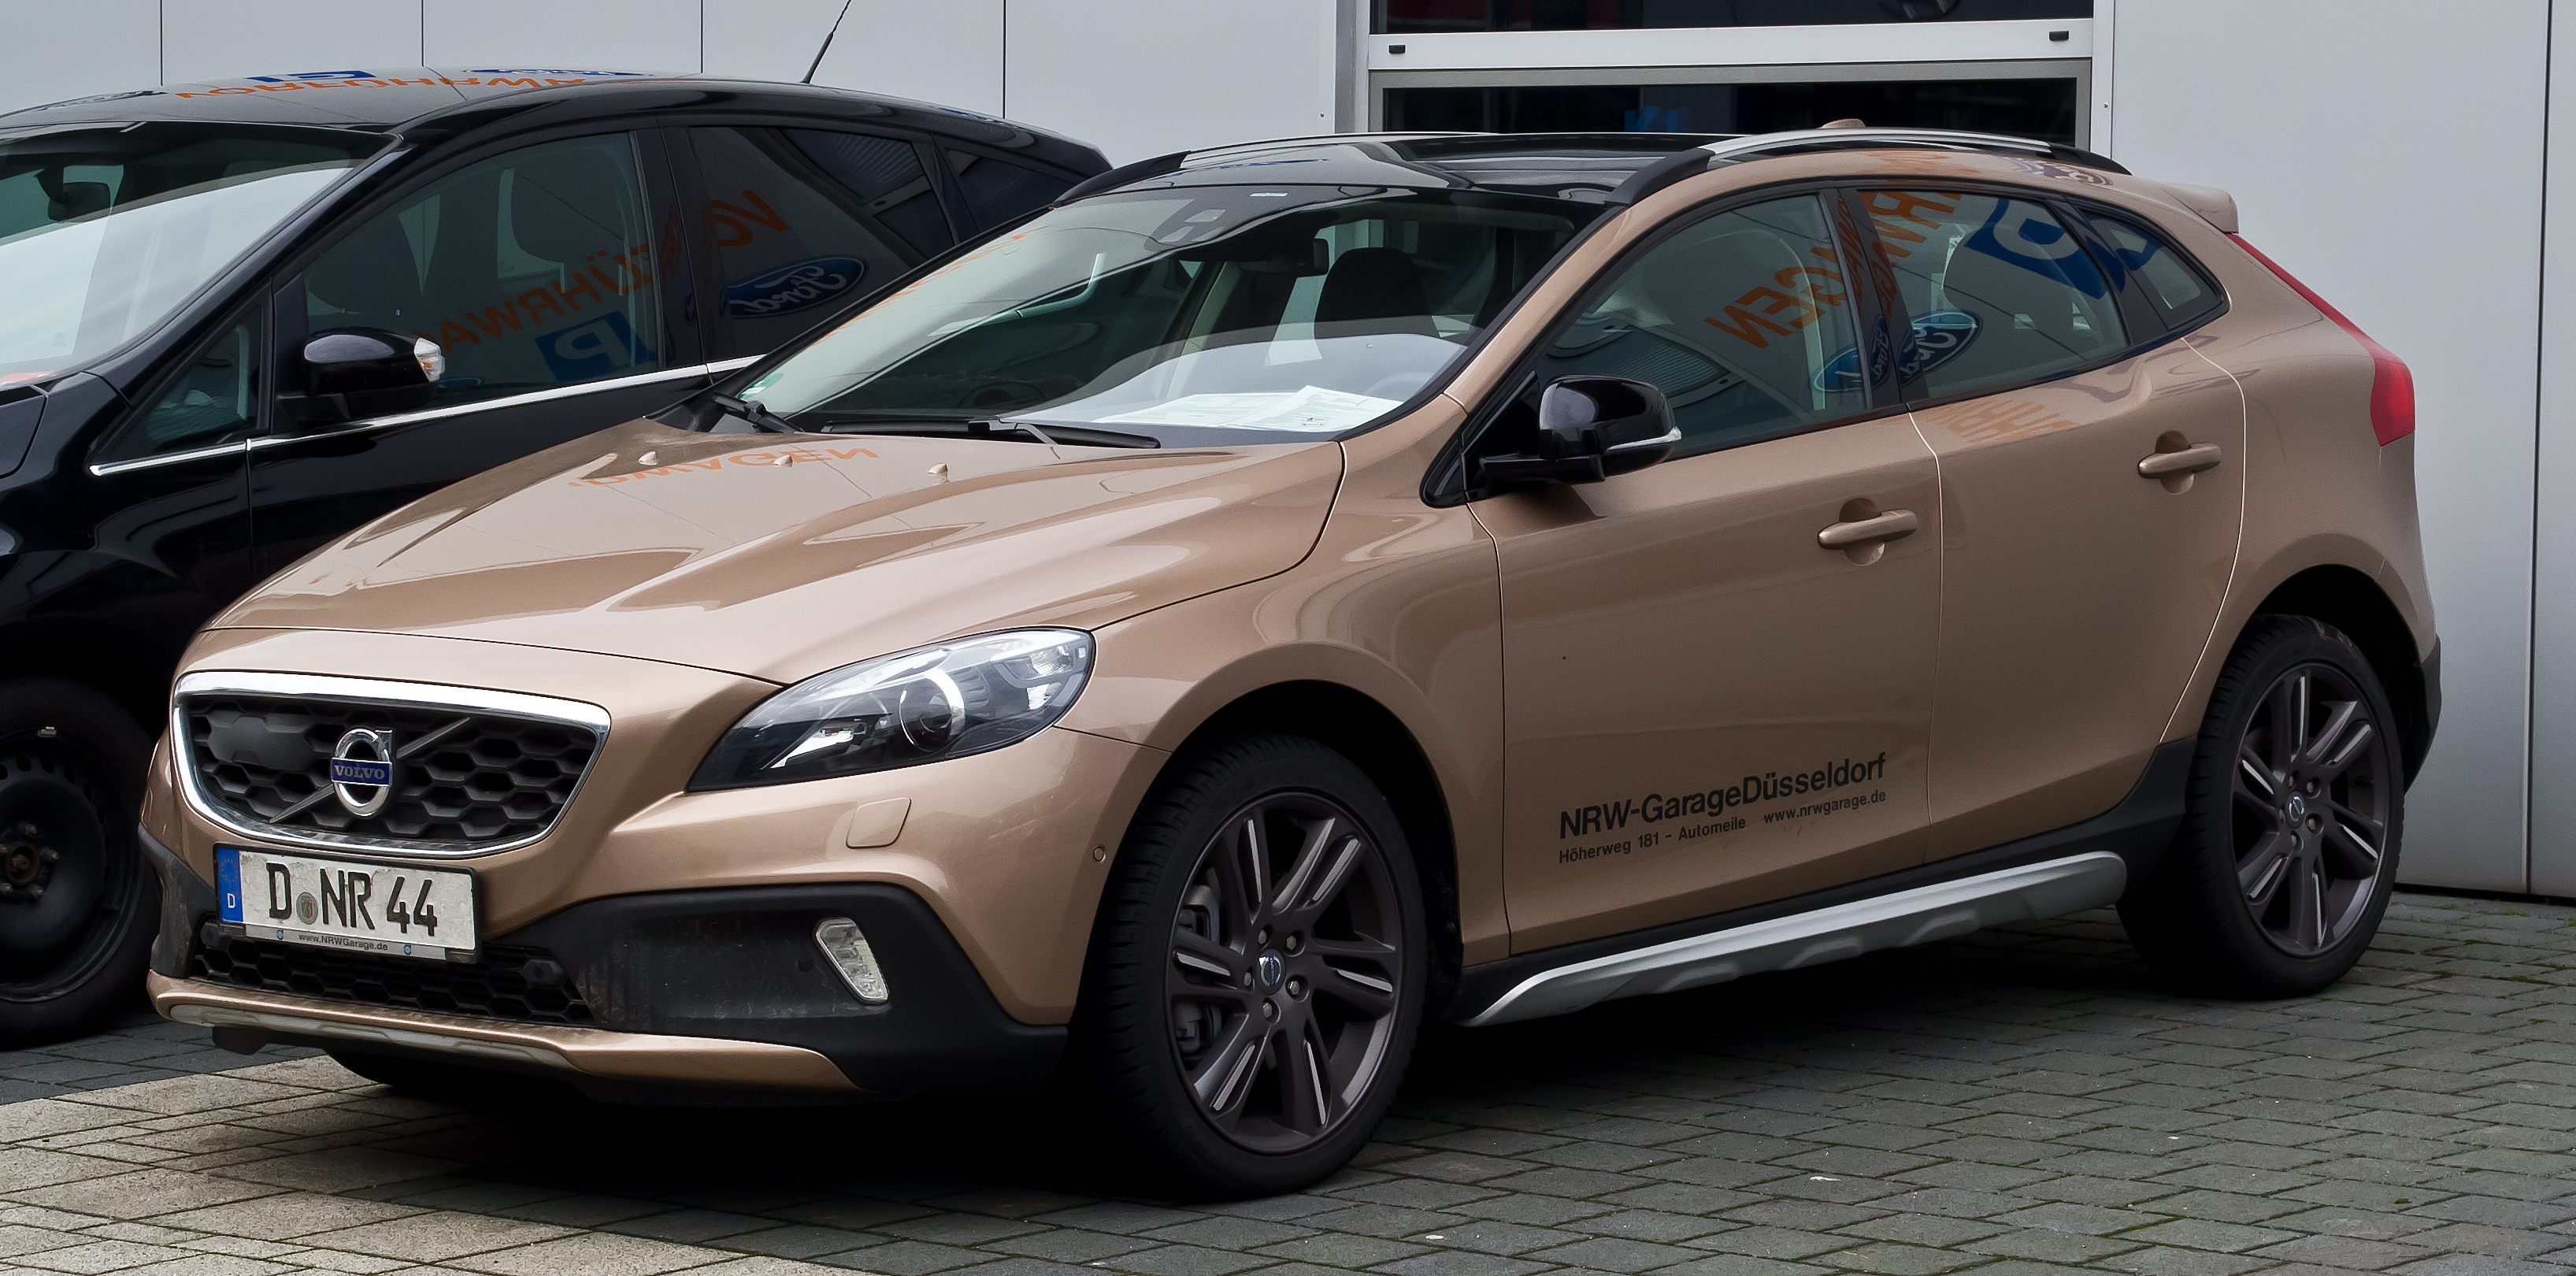 Volvo V40 D2 R-Design review - YouTube